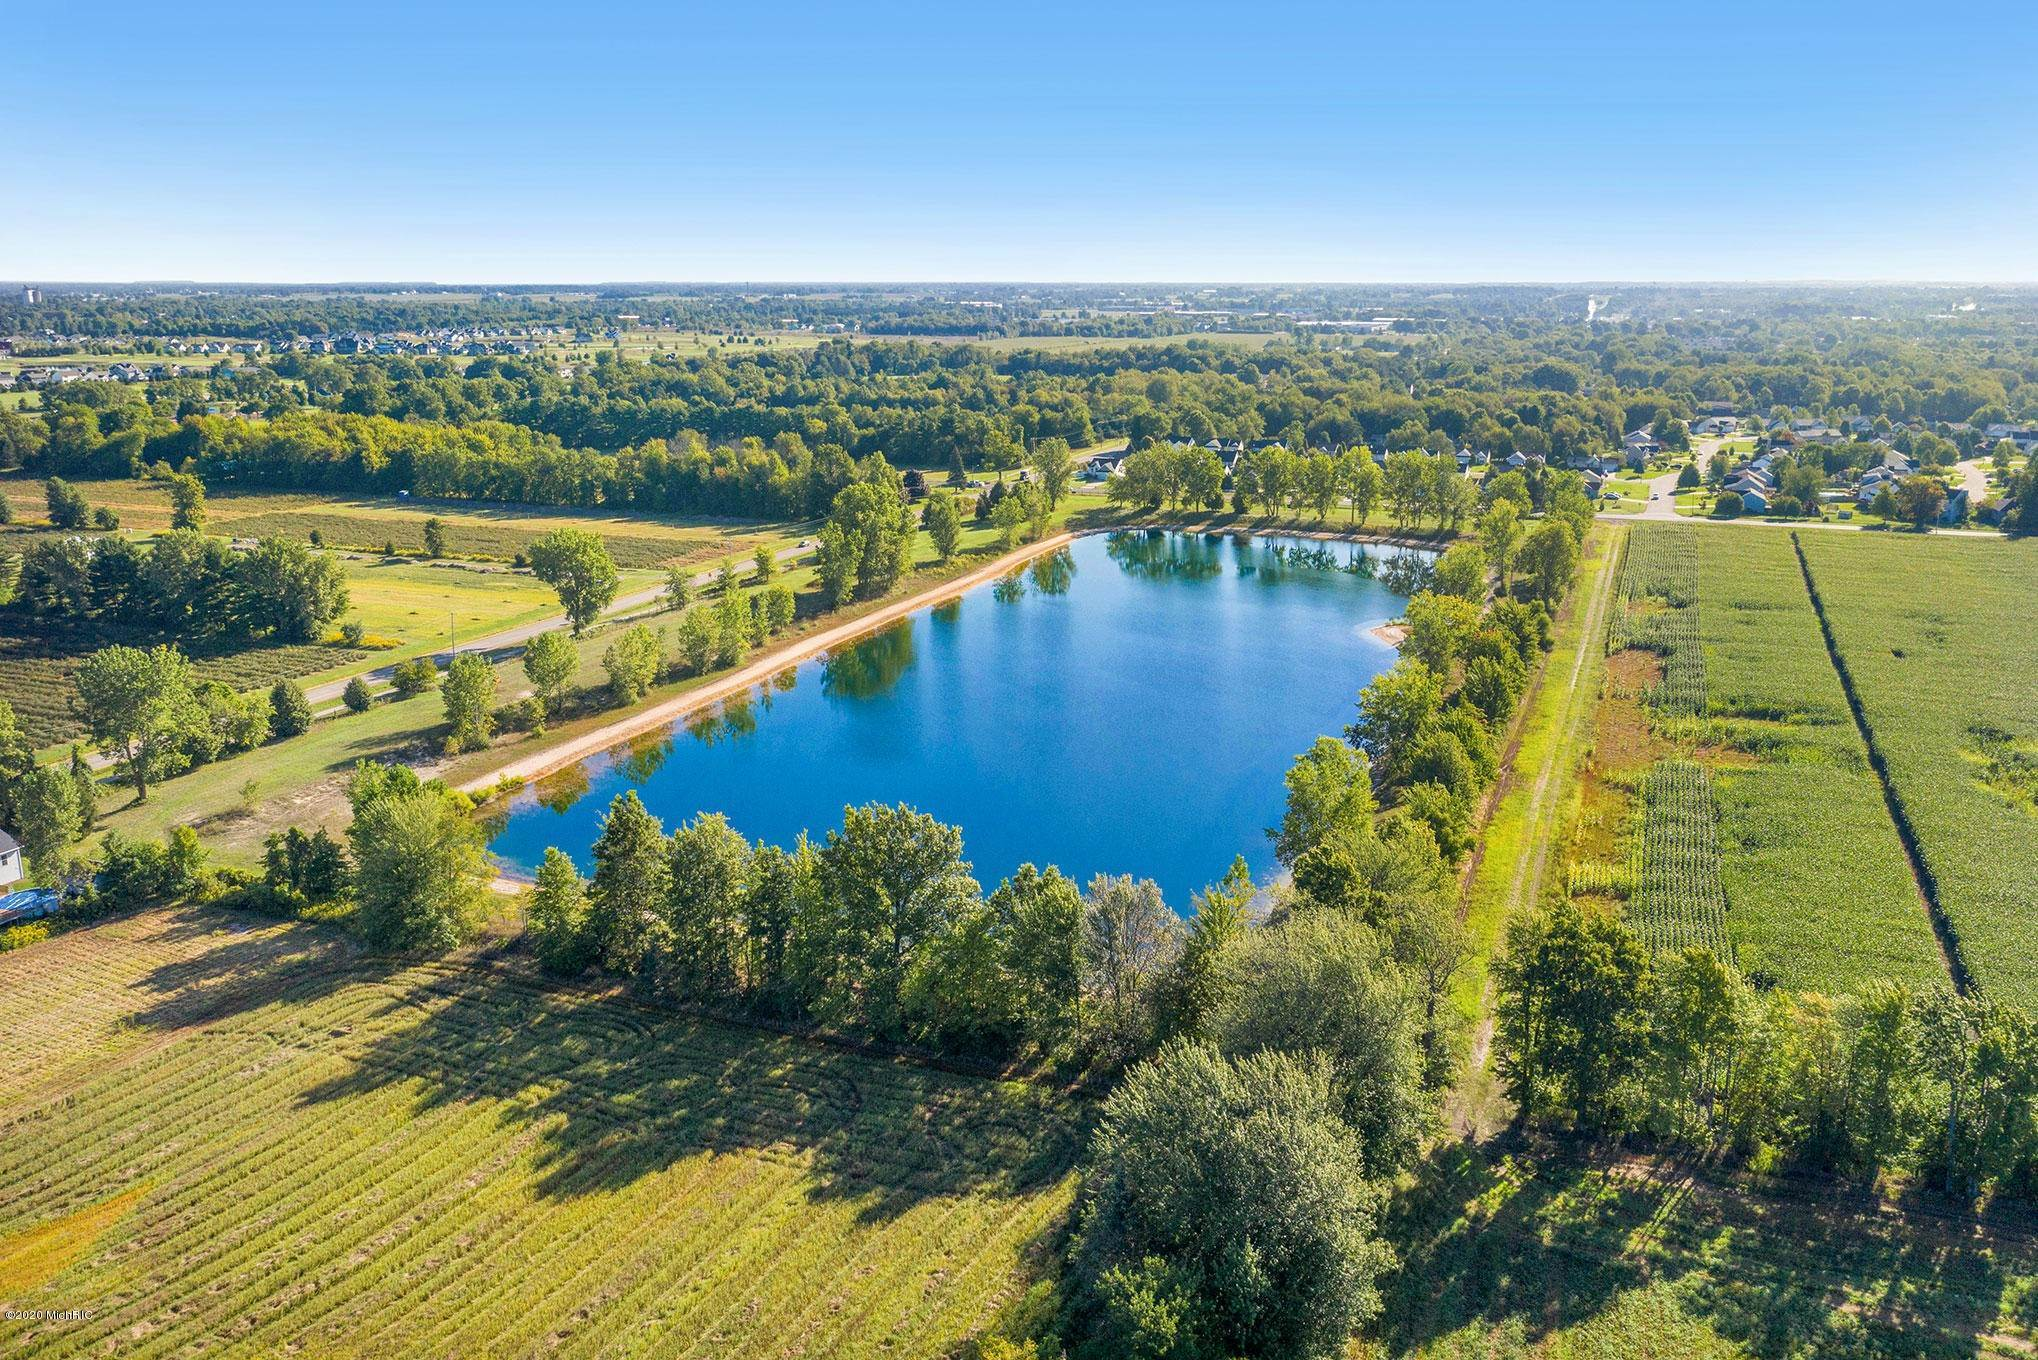 Land for Sale at Parcel 5 Topper Lake Holland, Michigan 49424 United States